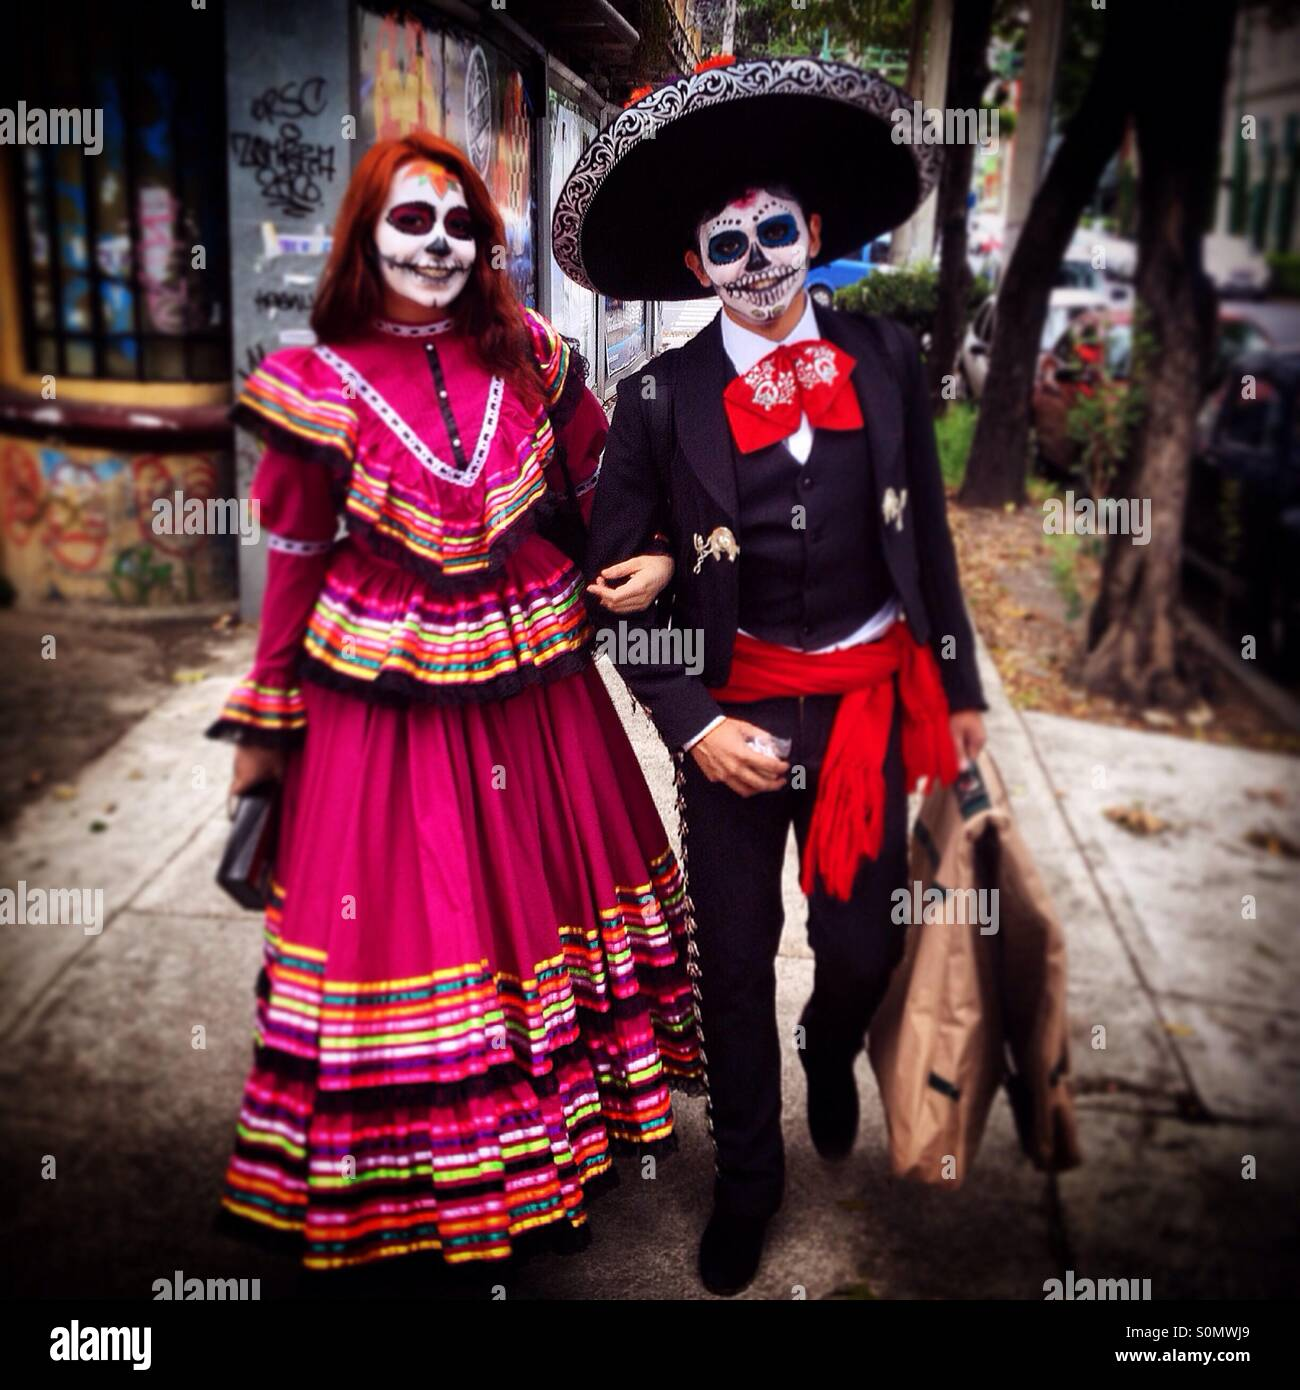 A couple of Mexicans dressed with traditional costumes for Day of the Dead celebrations walk in a street of Colonia Roma Mexico City Mexico  sc 1 st  Alamy & A couple of Mexicans dressed with traditional costumes for Day of ...